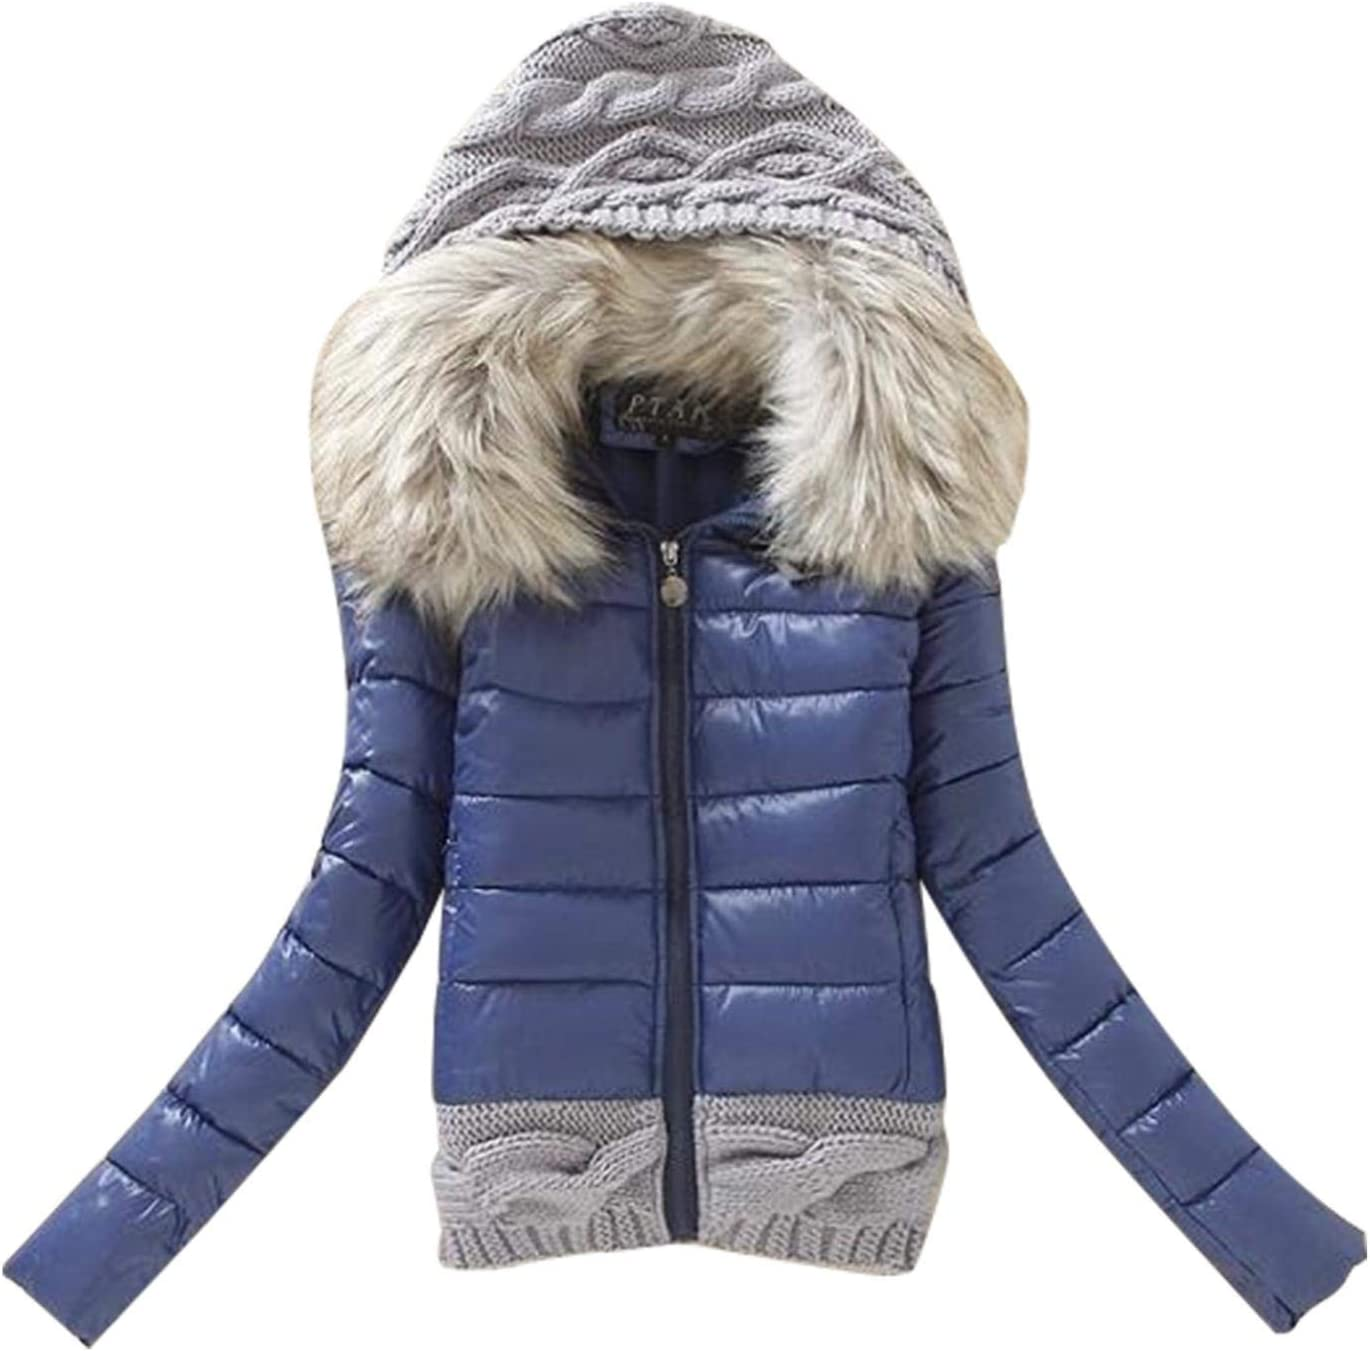 Women's Thick Winter Slim Coat Hooded Faux Fur Collar Fashion Solid Color Patchwork Casual Zip Up Outwear